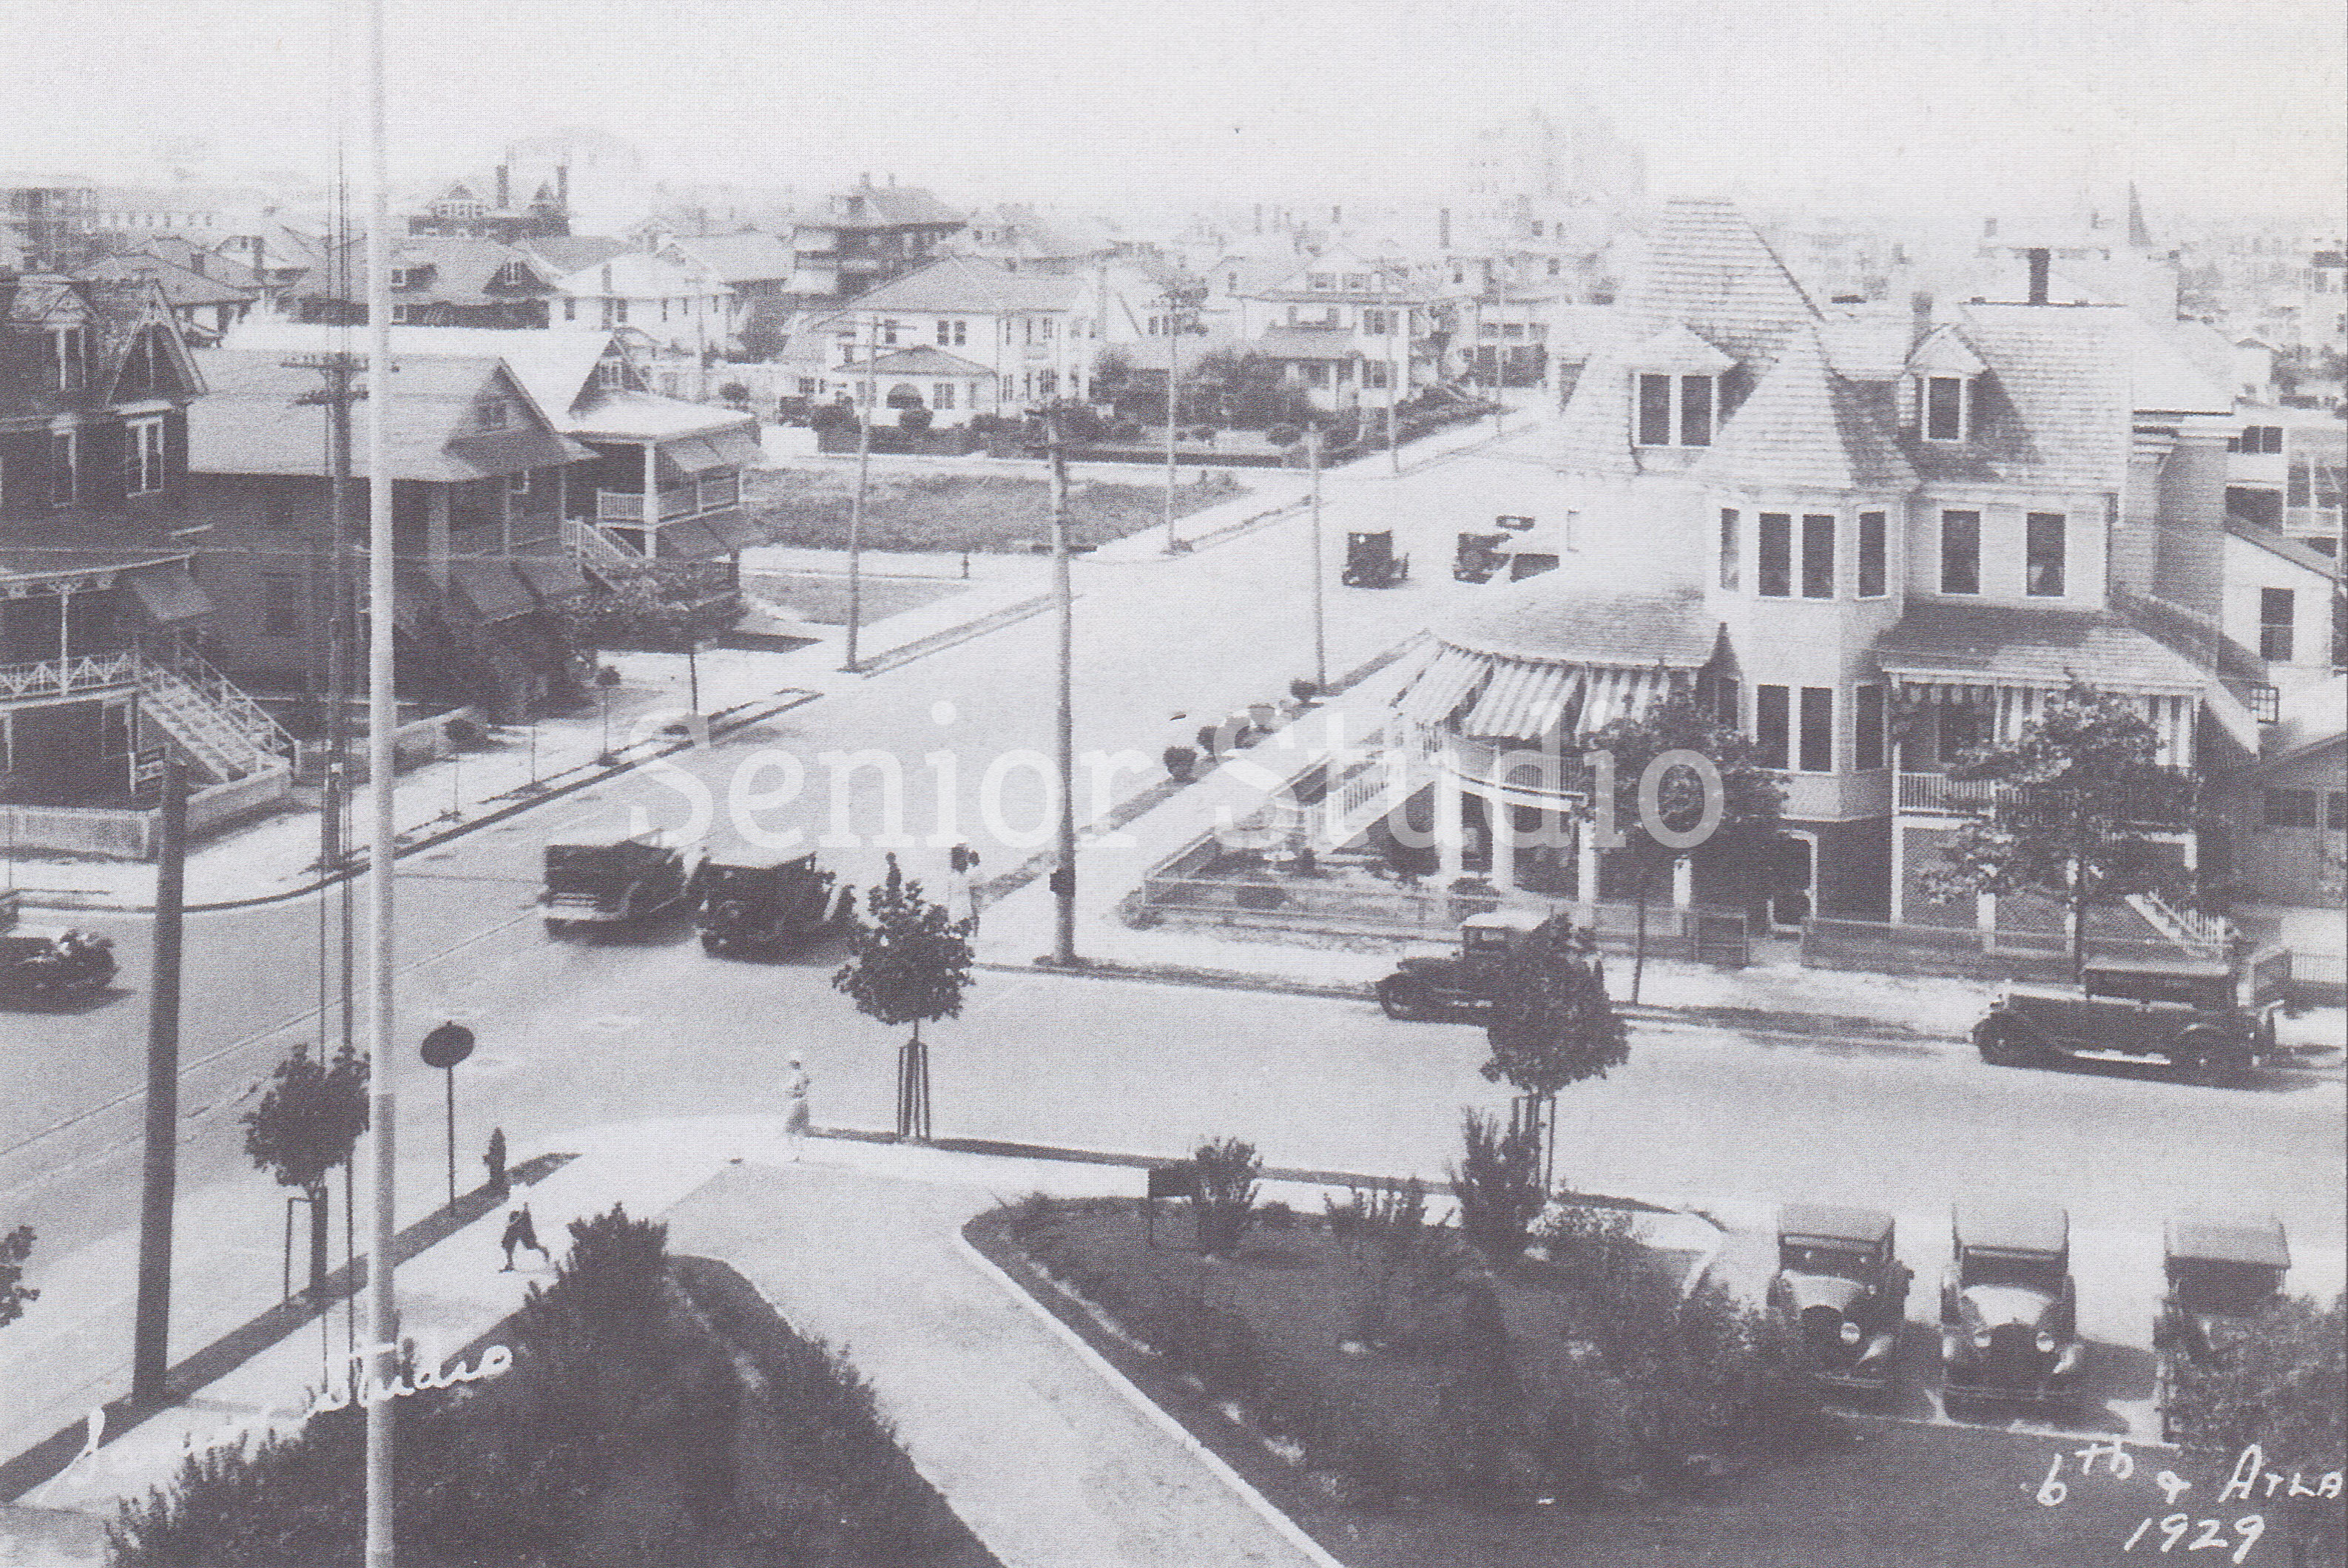 6th & Atlantic Ave - 1929 - Credit Senior Studio